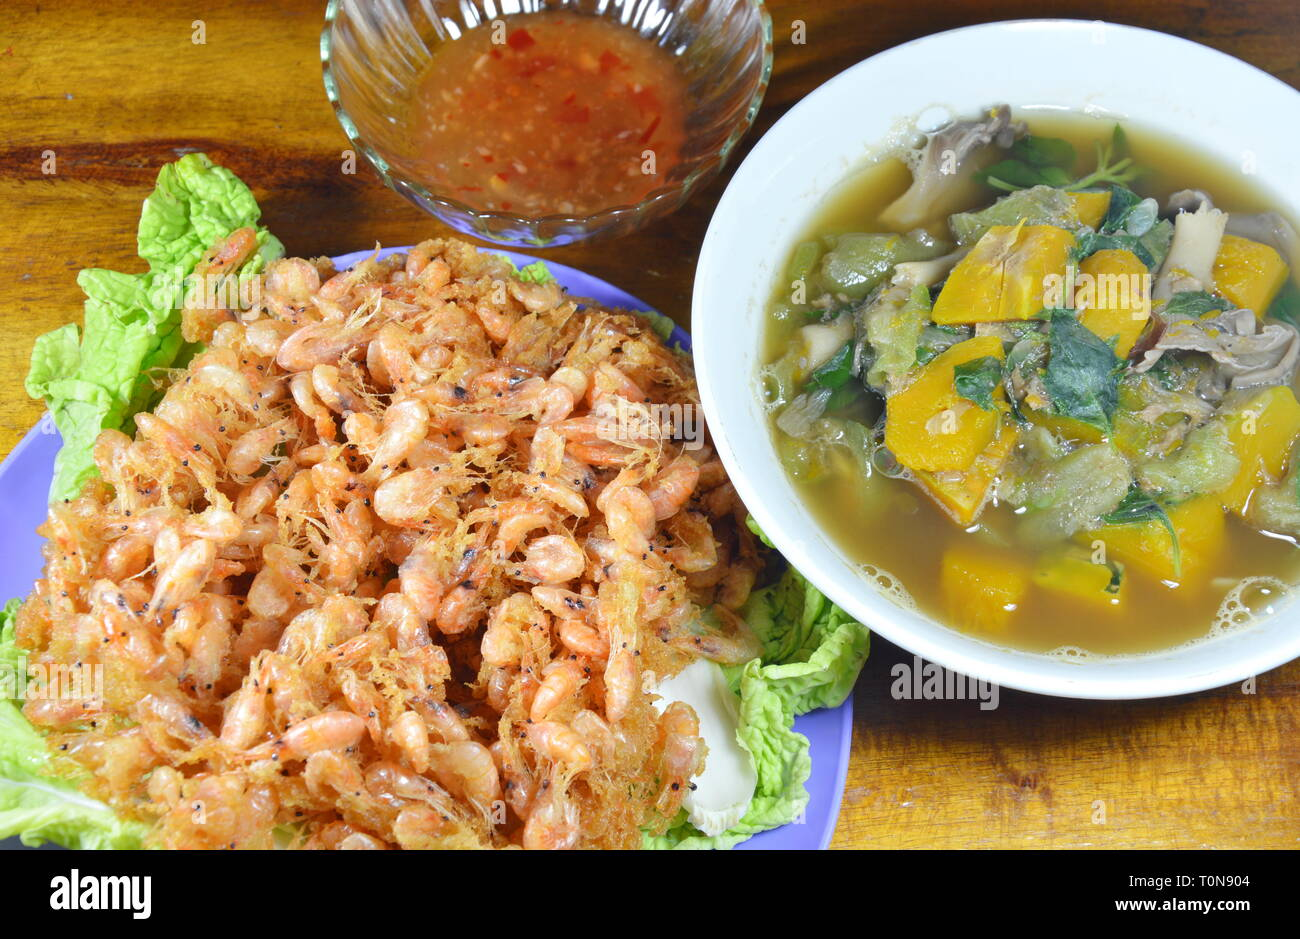 batter-fried shrimp and spicy mixed vegetable soup - Stock Image